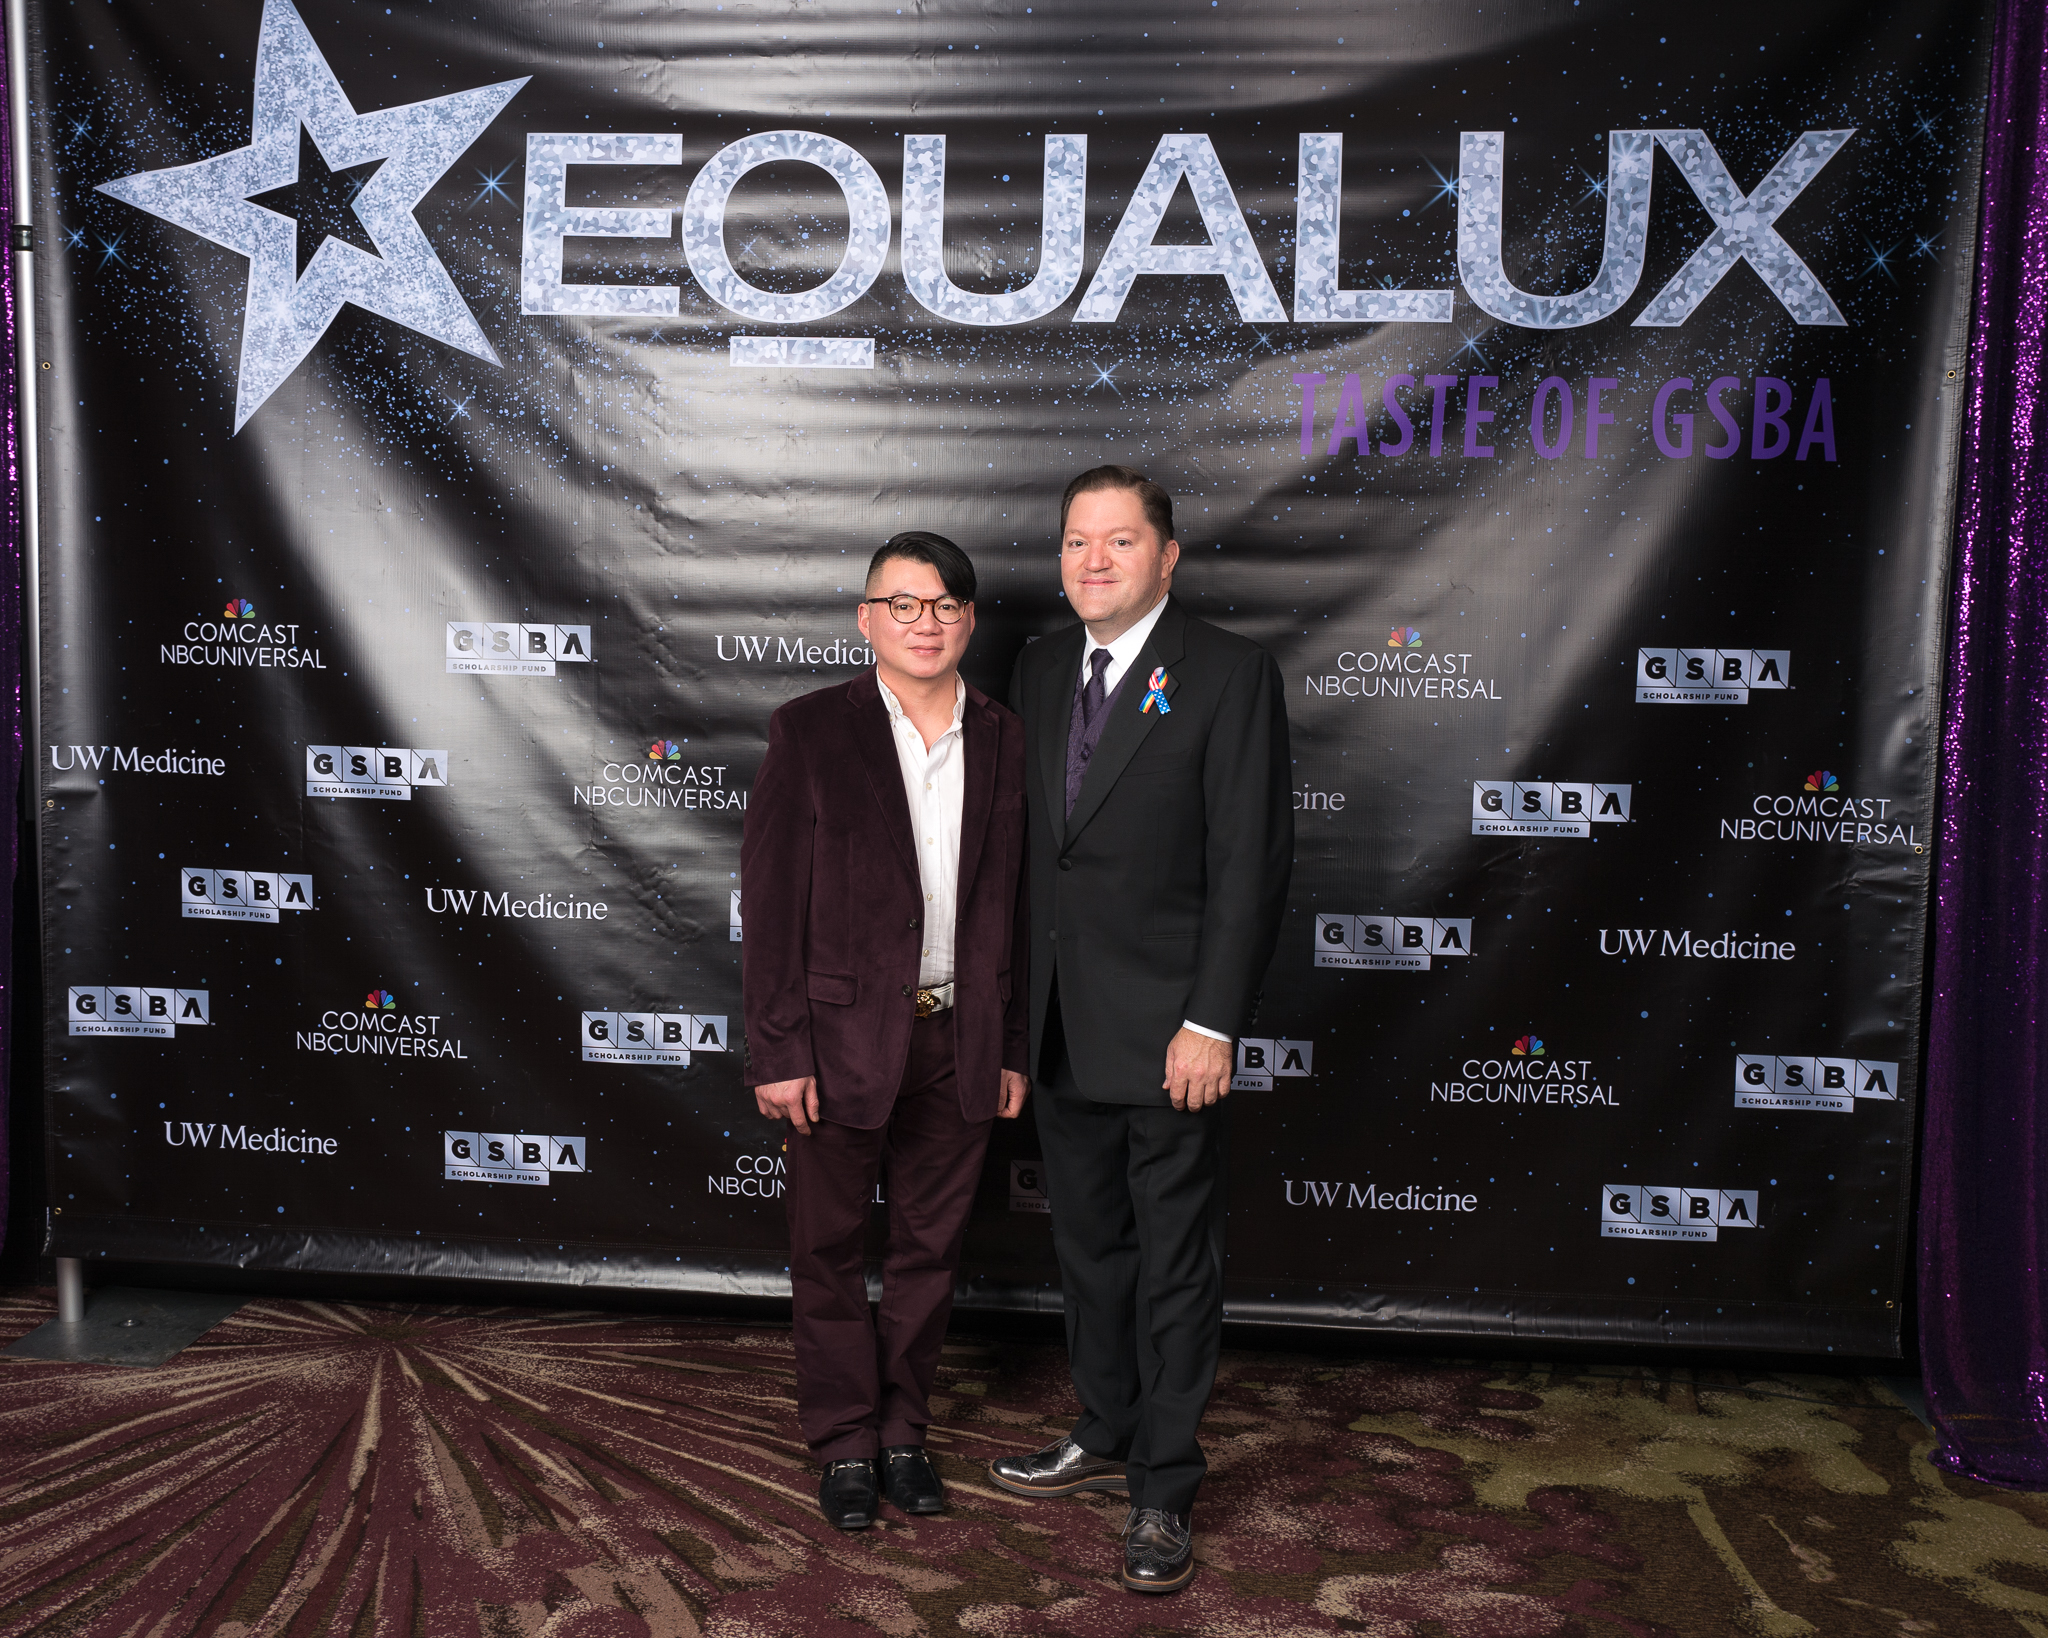 111718_GSBA EQUALUX at The Westin Seattle (Credit- Nate Gowdy)-21.jpg